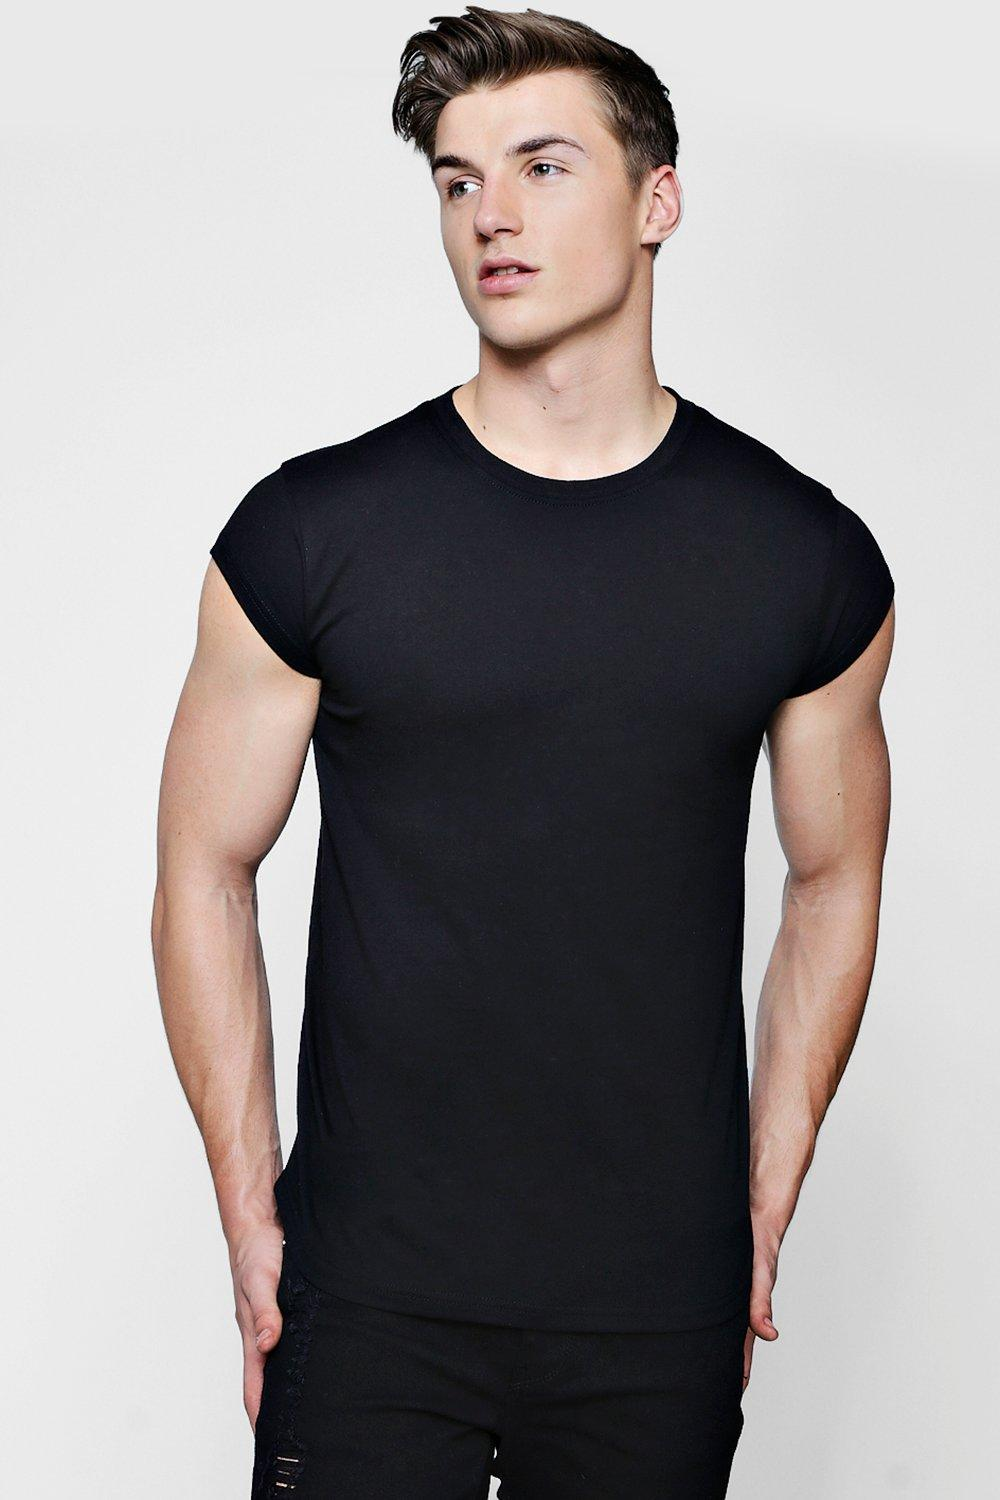 Black t shirt man - Hover To Zoom